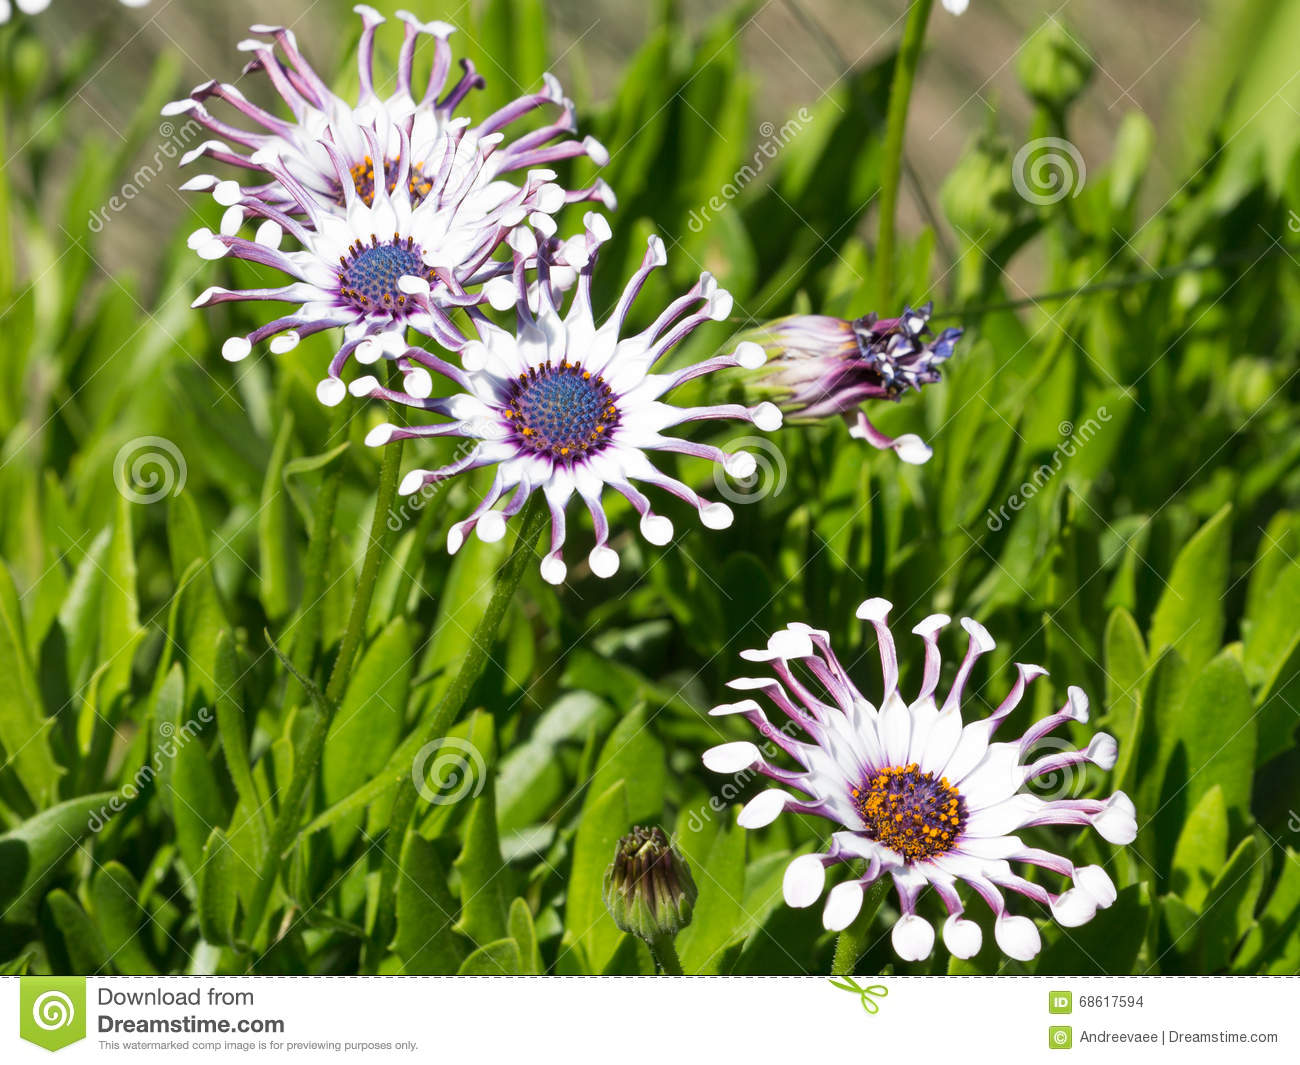 Osteospermum in the garden in summer stock photo image of flower beautiful bright purple pink white flowers with a blue center and unusual compressed petals hybrid variety osteospermum in the garden summer day mightylinksfo